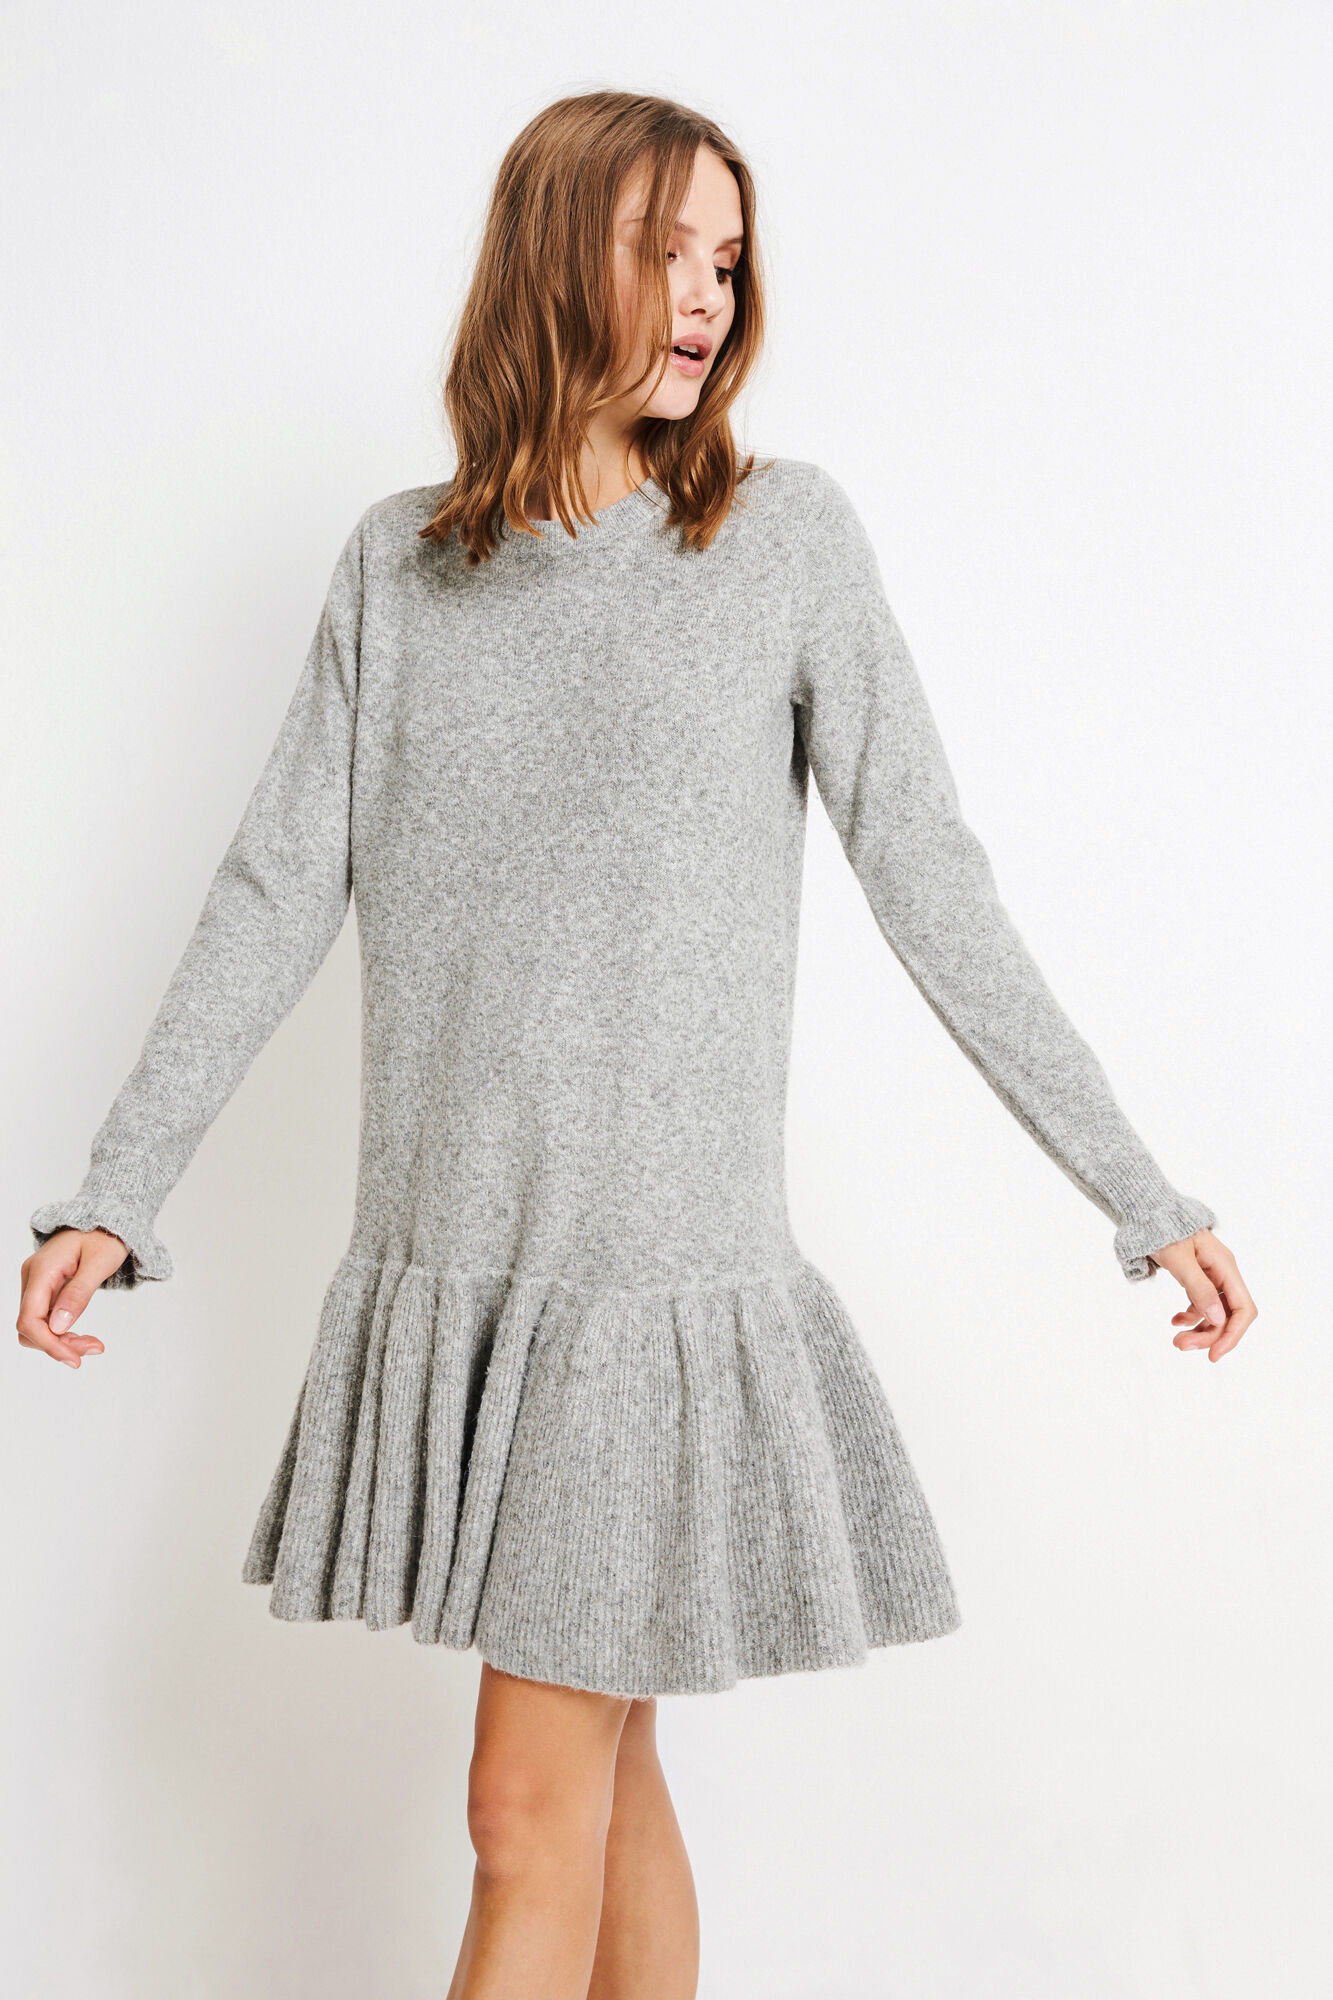 ENJUPITER LS DRESS 5178, GREY MEL.